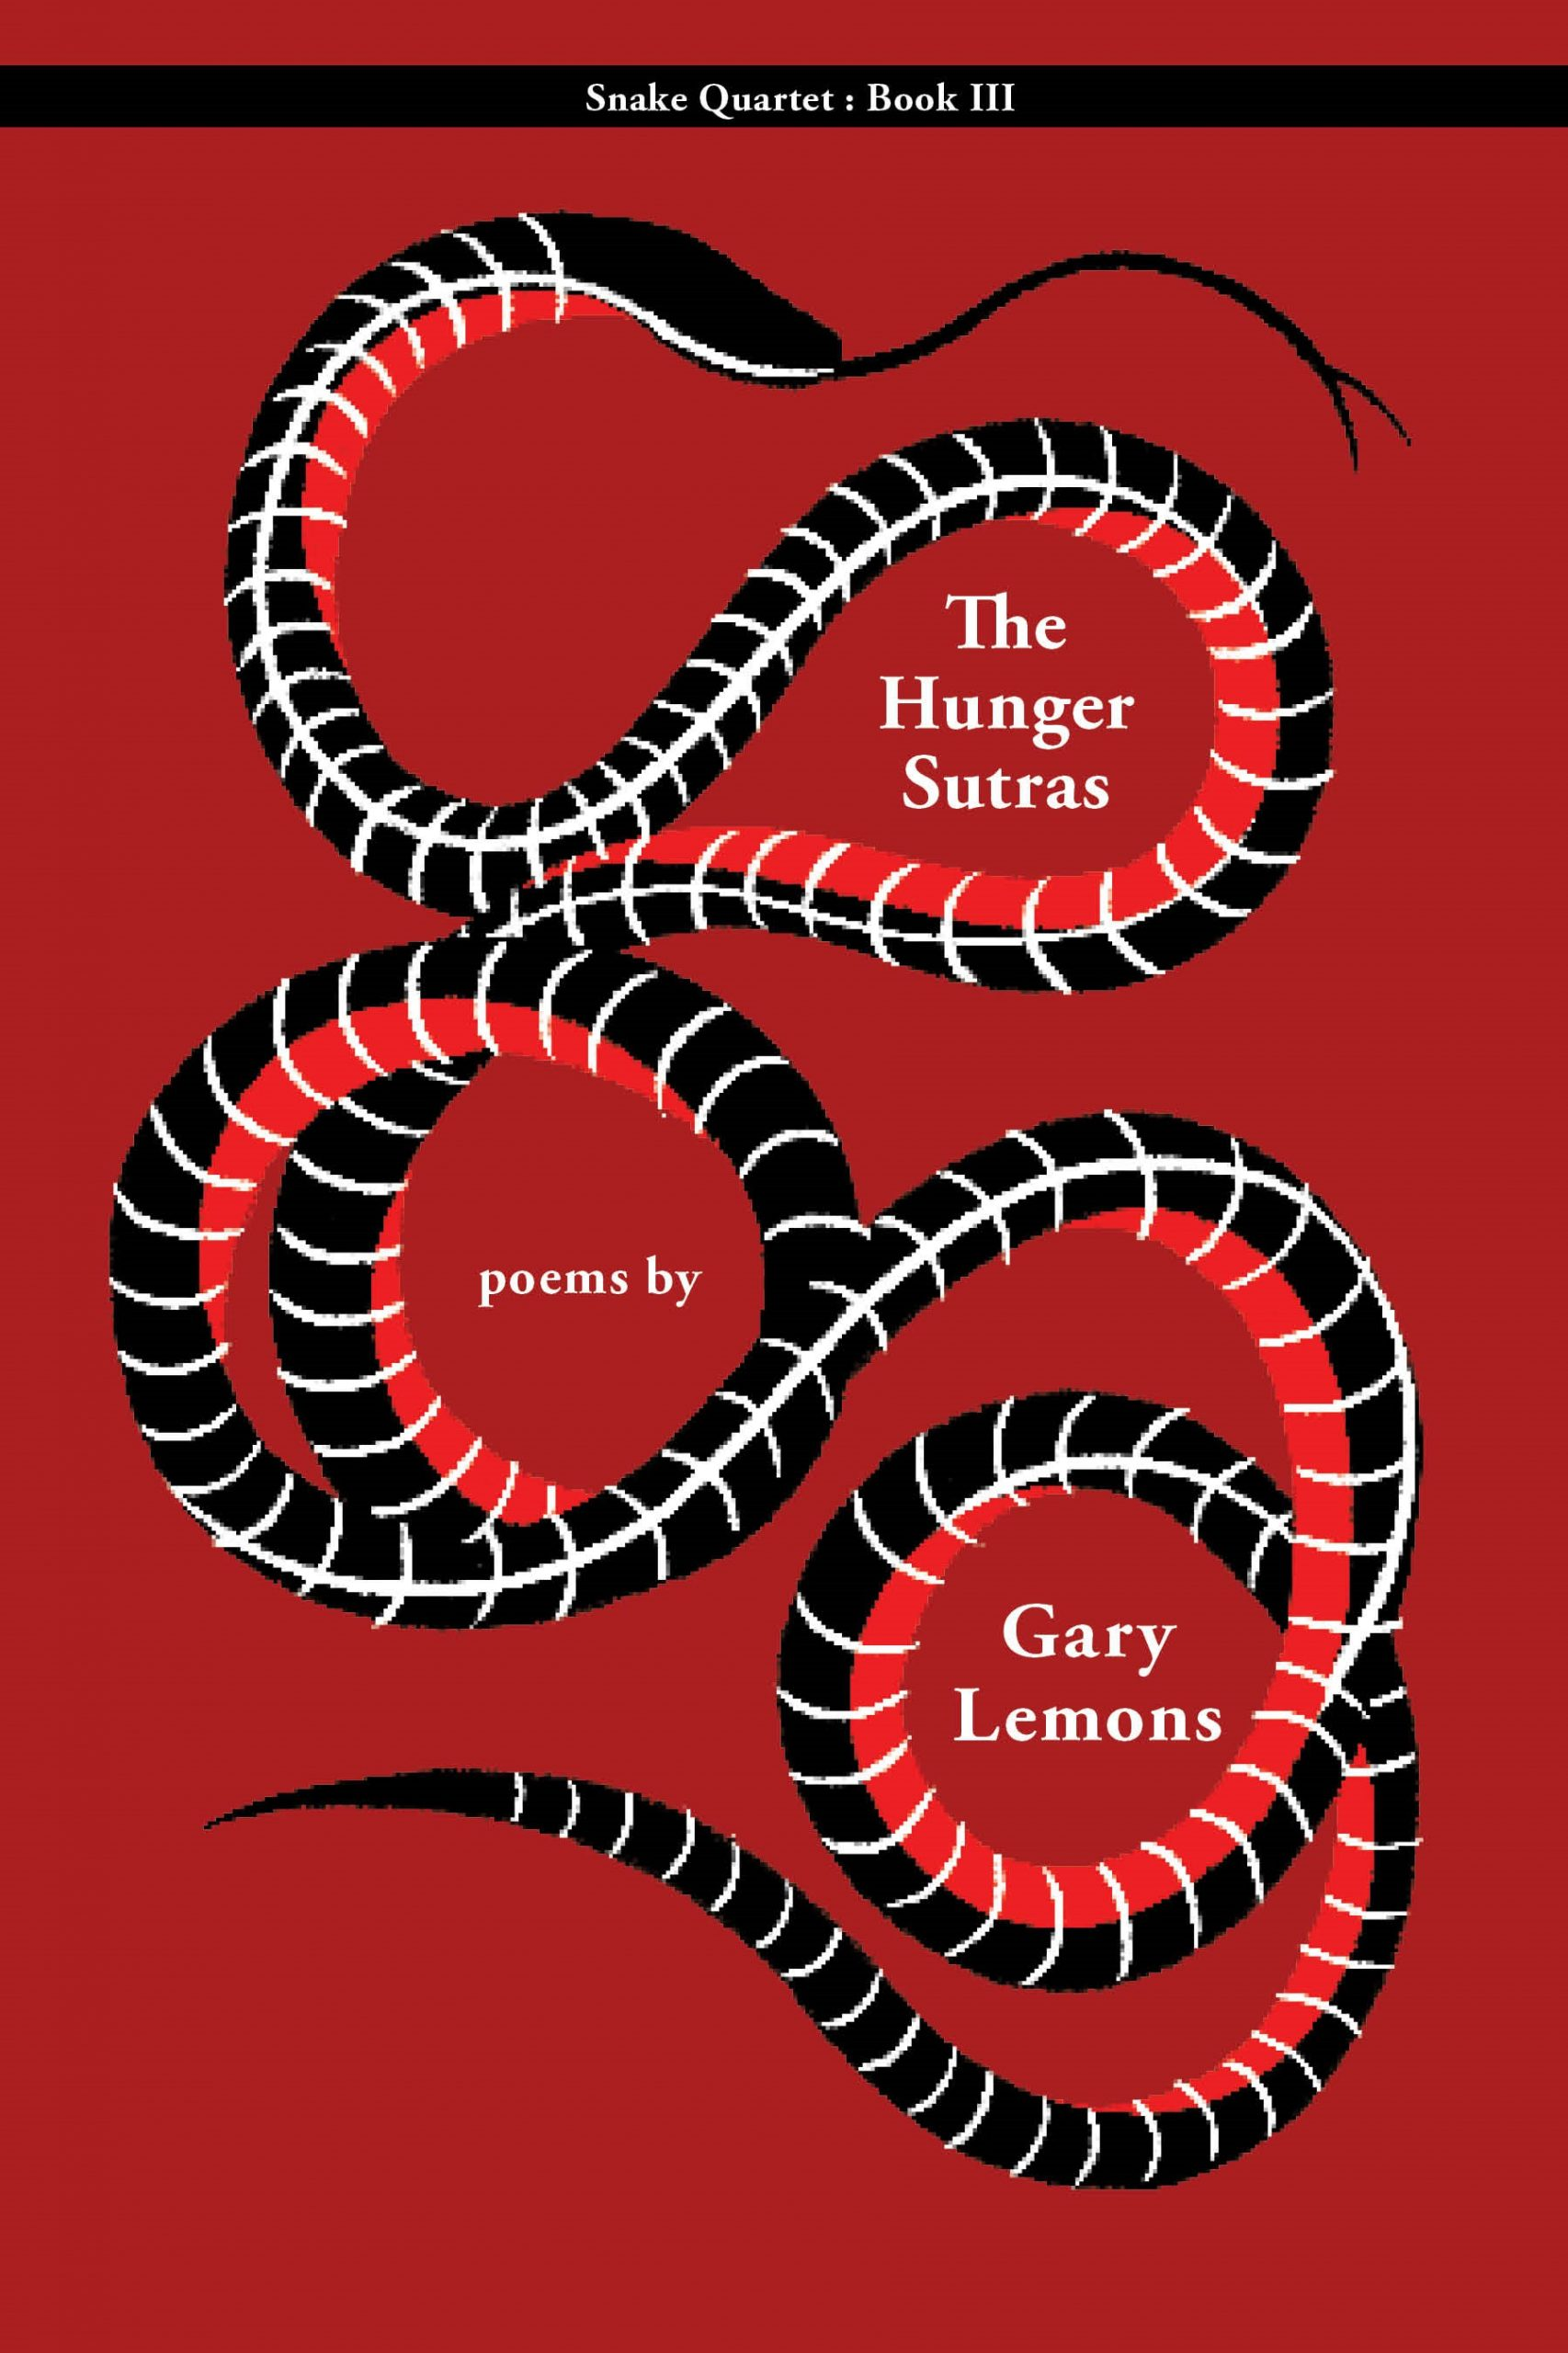 A Red background with a design of a black snake at the center and white script that reads The Hunger Sutras poems by Gary Lemons.